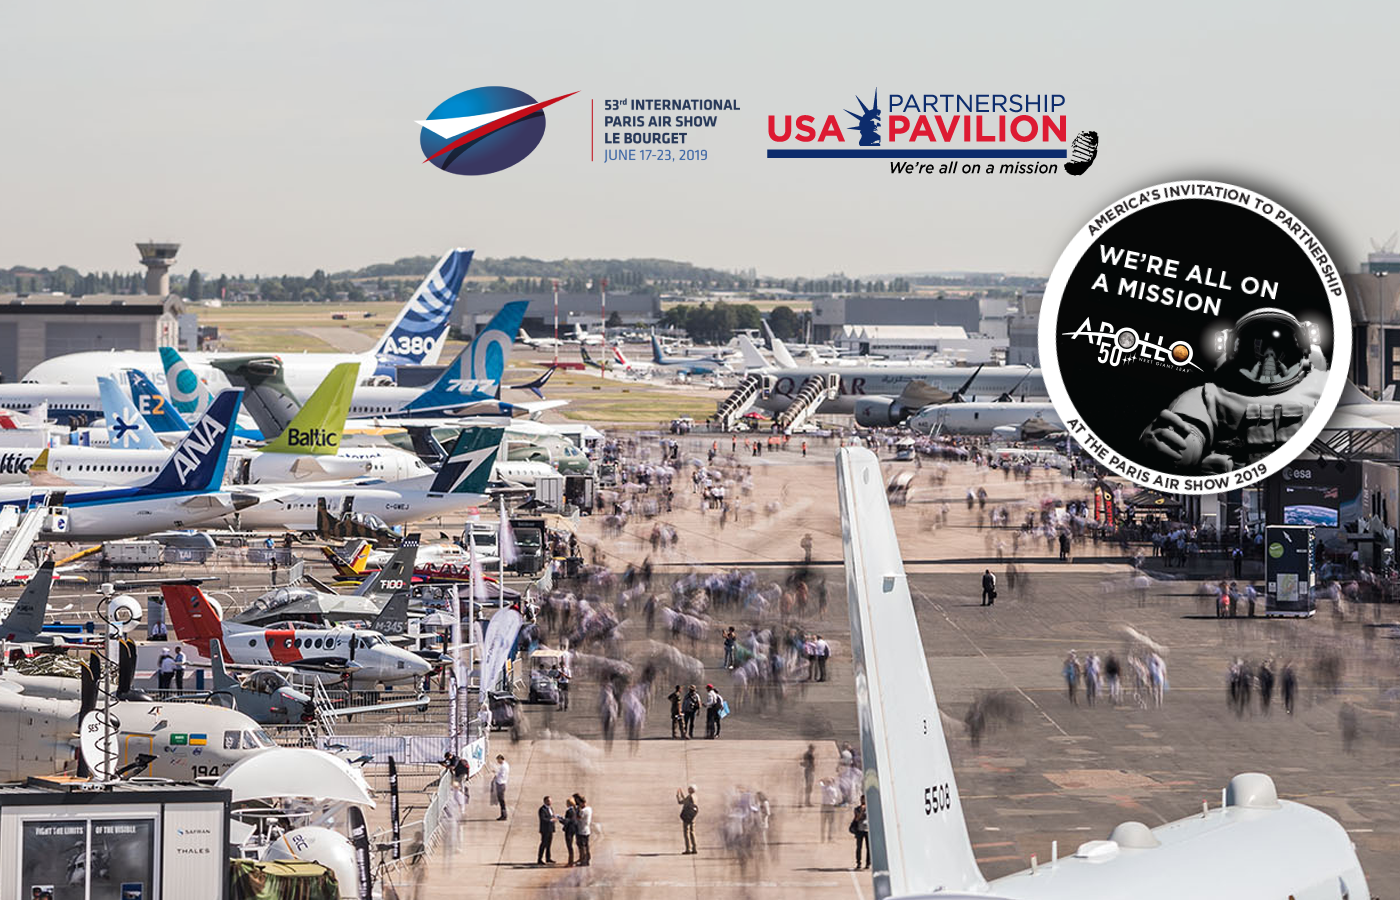 Paris Air Show 2019 Events USA Partnership Pavilion